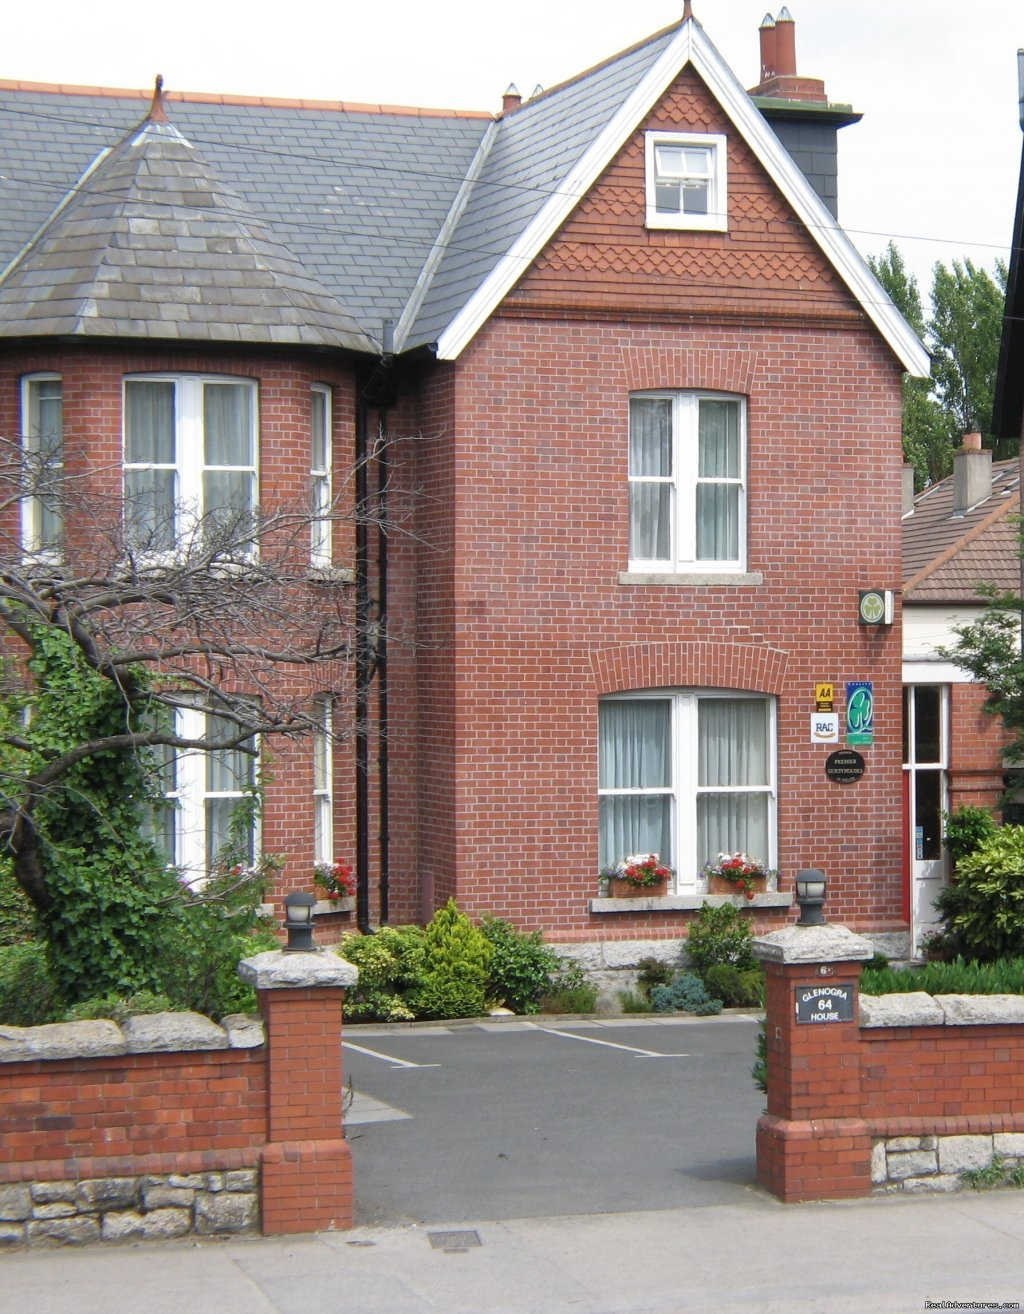 A warm welcome awaits you at Glenogra, a 4 star guesthouse. Set inside an elegant Edwardian period house circa 1896, our relaxed and informal ambiance makes it the perfect place to stay for business or pleasure. Located in Ballsbridge, just 10 minute